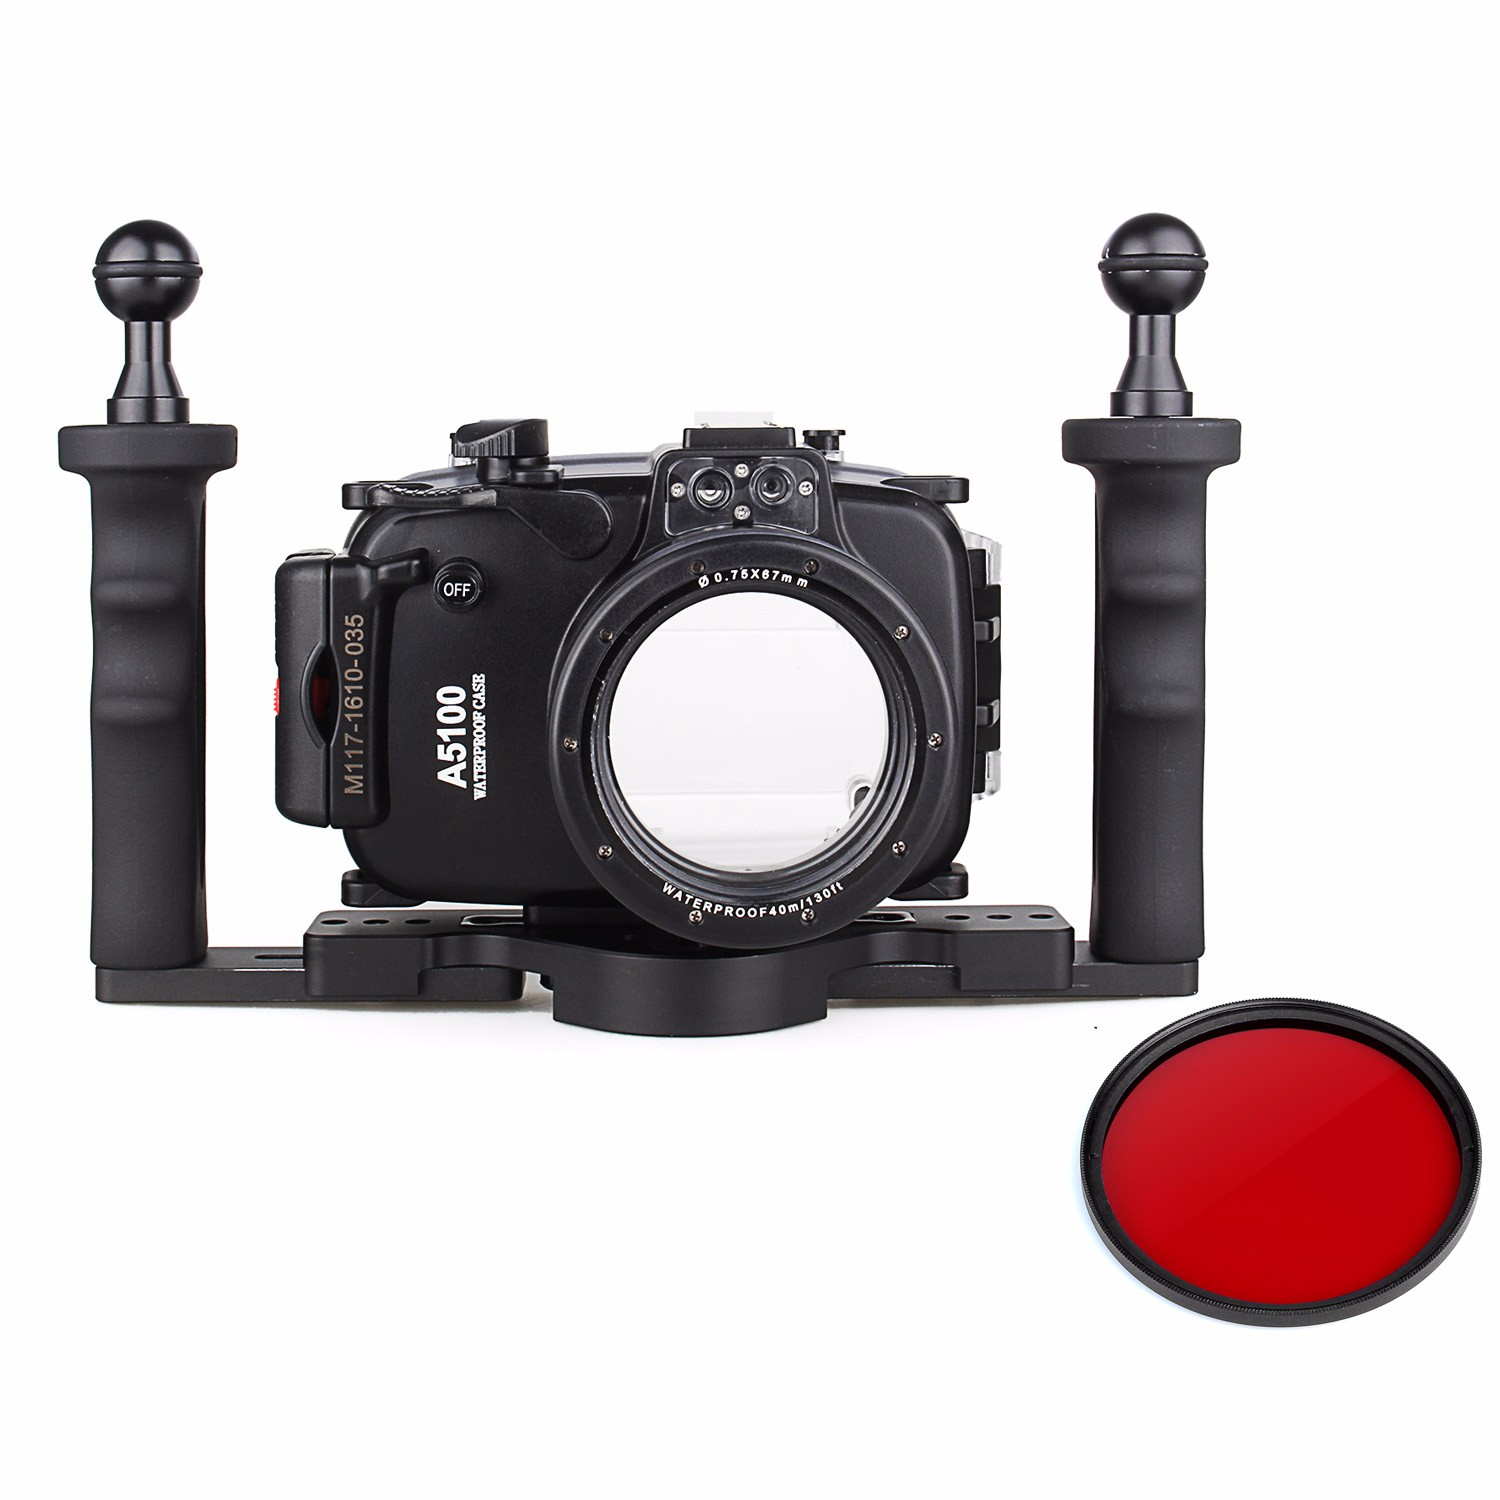 40m 130ft Waterproof Underwater Camera Housing Case Bag for Sony A5100 16-50mm Lens + Two Hands Aluminium Tray + 67mm Red Filter waterproof underwater housing camera bag case for sony a6000 16 50mm lens